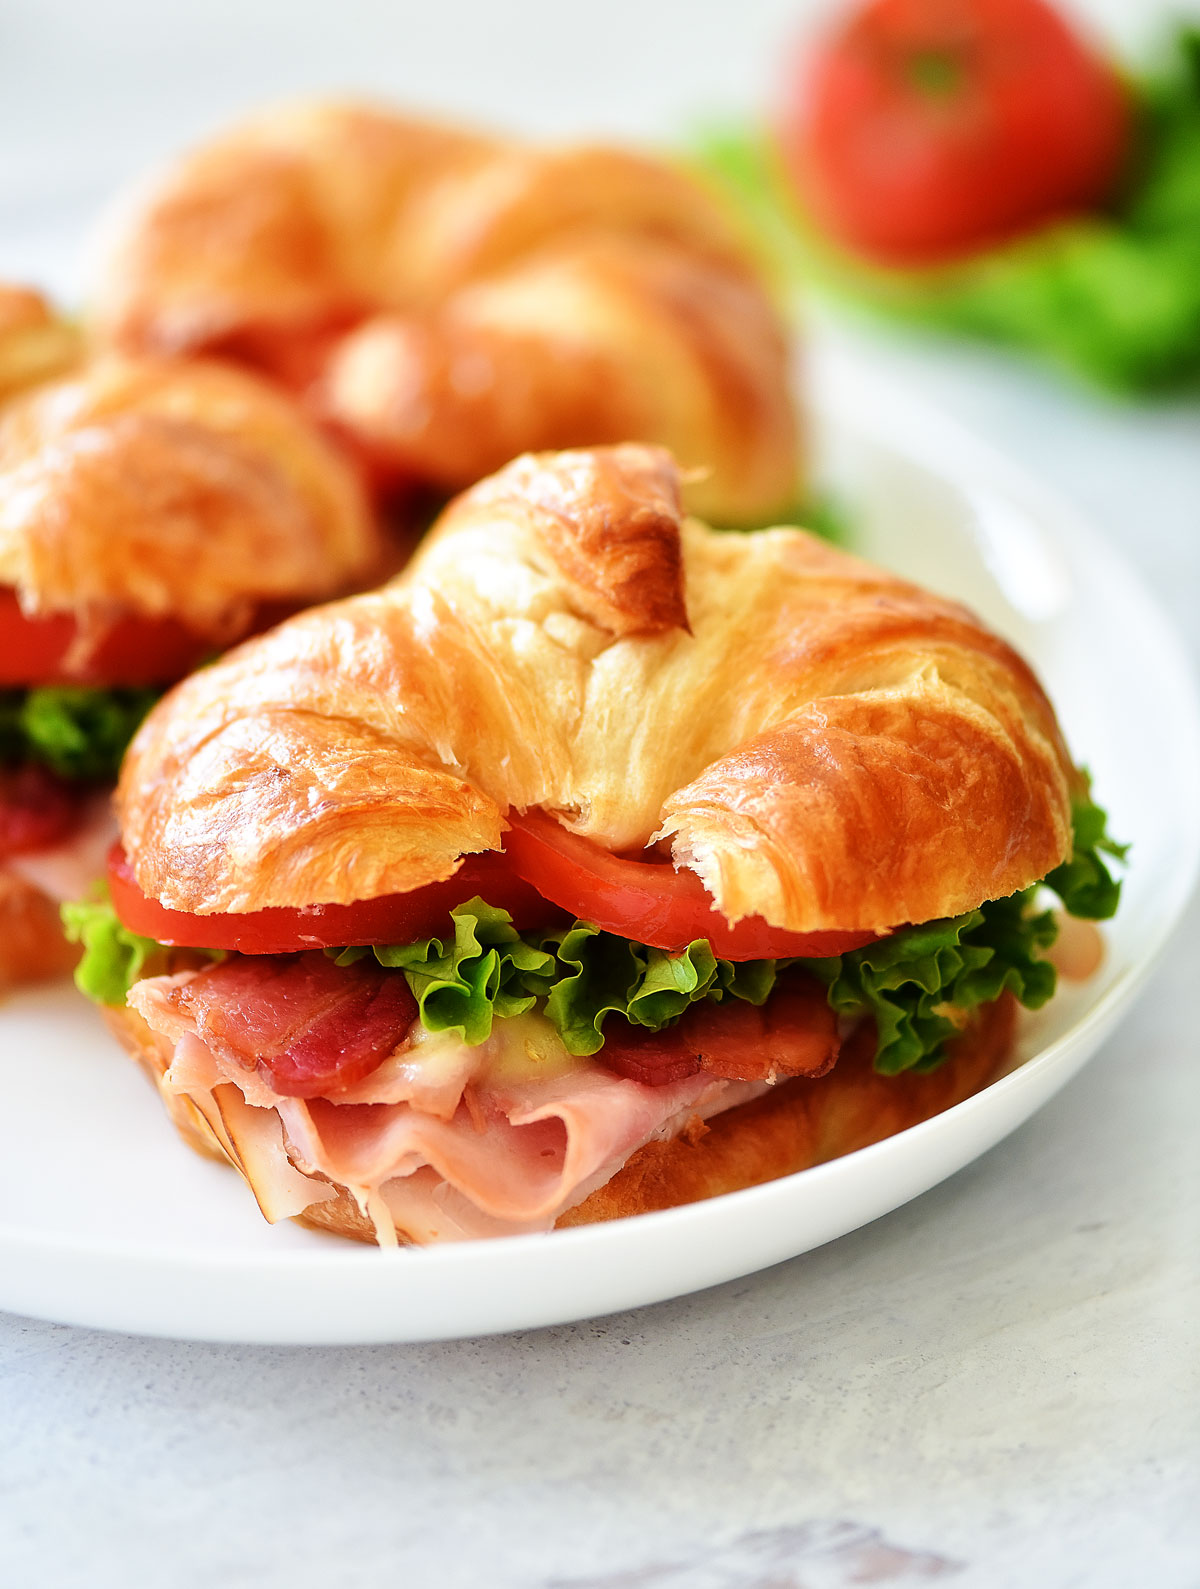 Club Croissant Sandwiches are croissants filled with turkey, ham and cheese. Life-in-the-Lofthouse.com